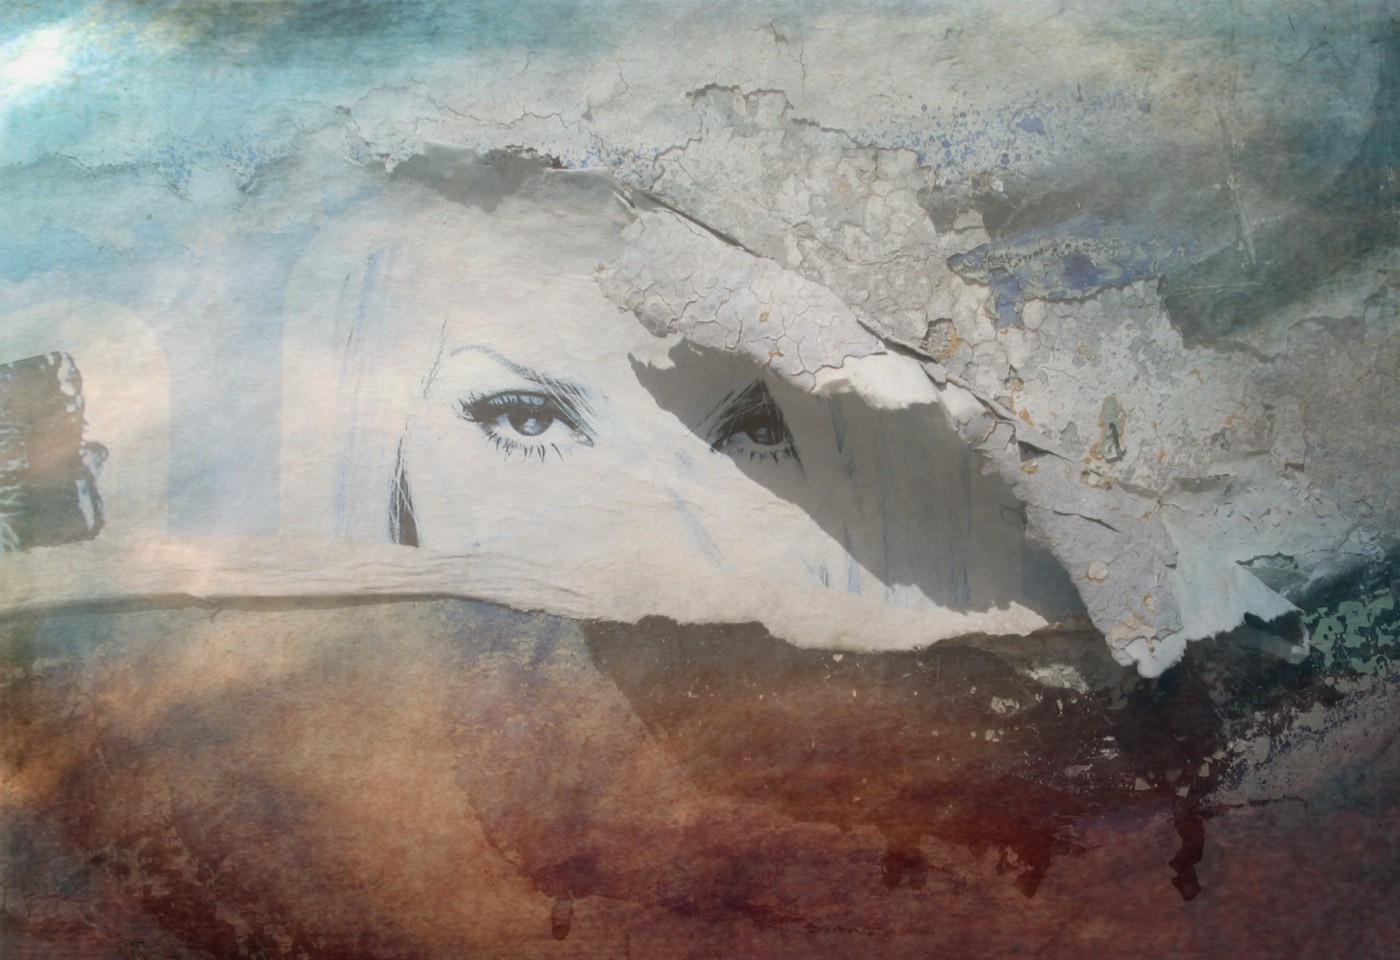 A photo of a wall in Mexico with peeling paint, where a flier was mostly torn away, but a piece of it with part of a woman's eyes still remains.